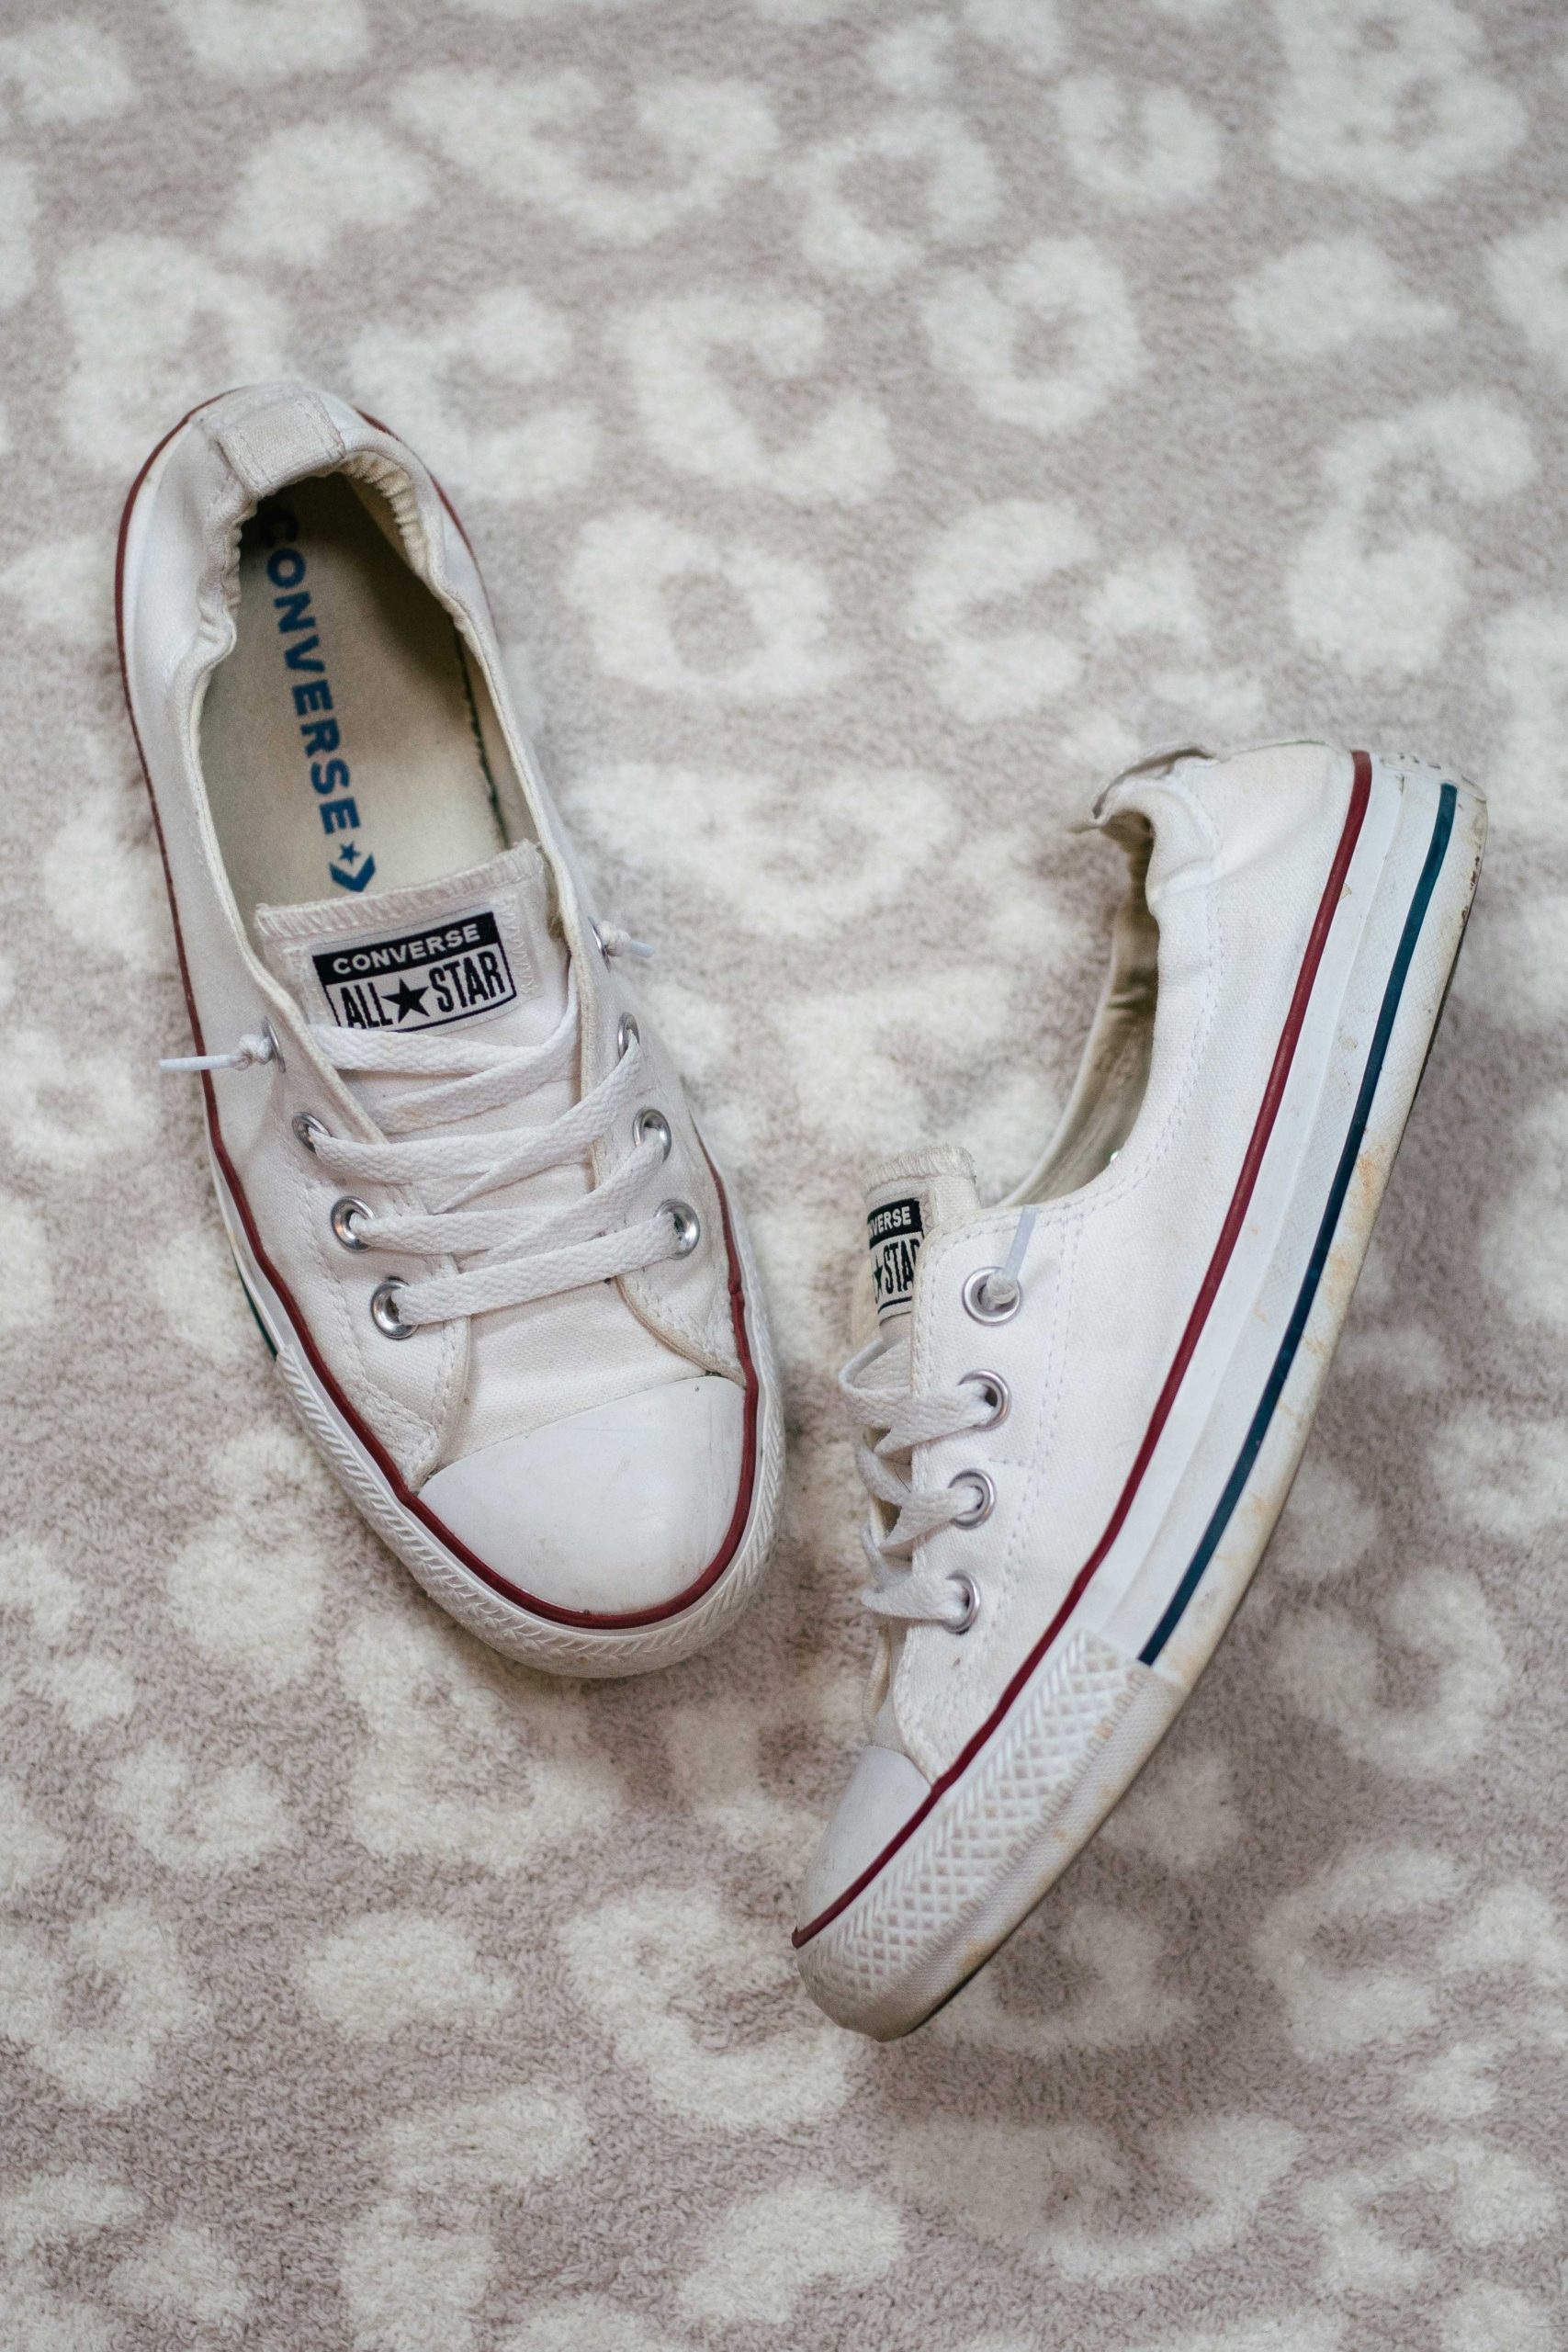 Virginia blogger, Lauren Dix, tries on 10 different pairs of white sneakers for the ultimate white sneaker review! The Converse Shoreline sneaker pictured here are included!